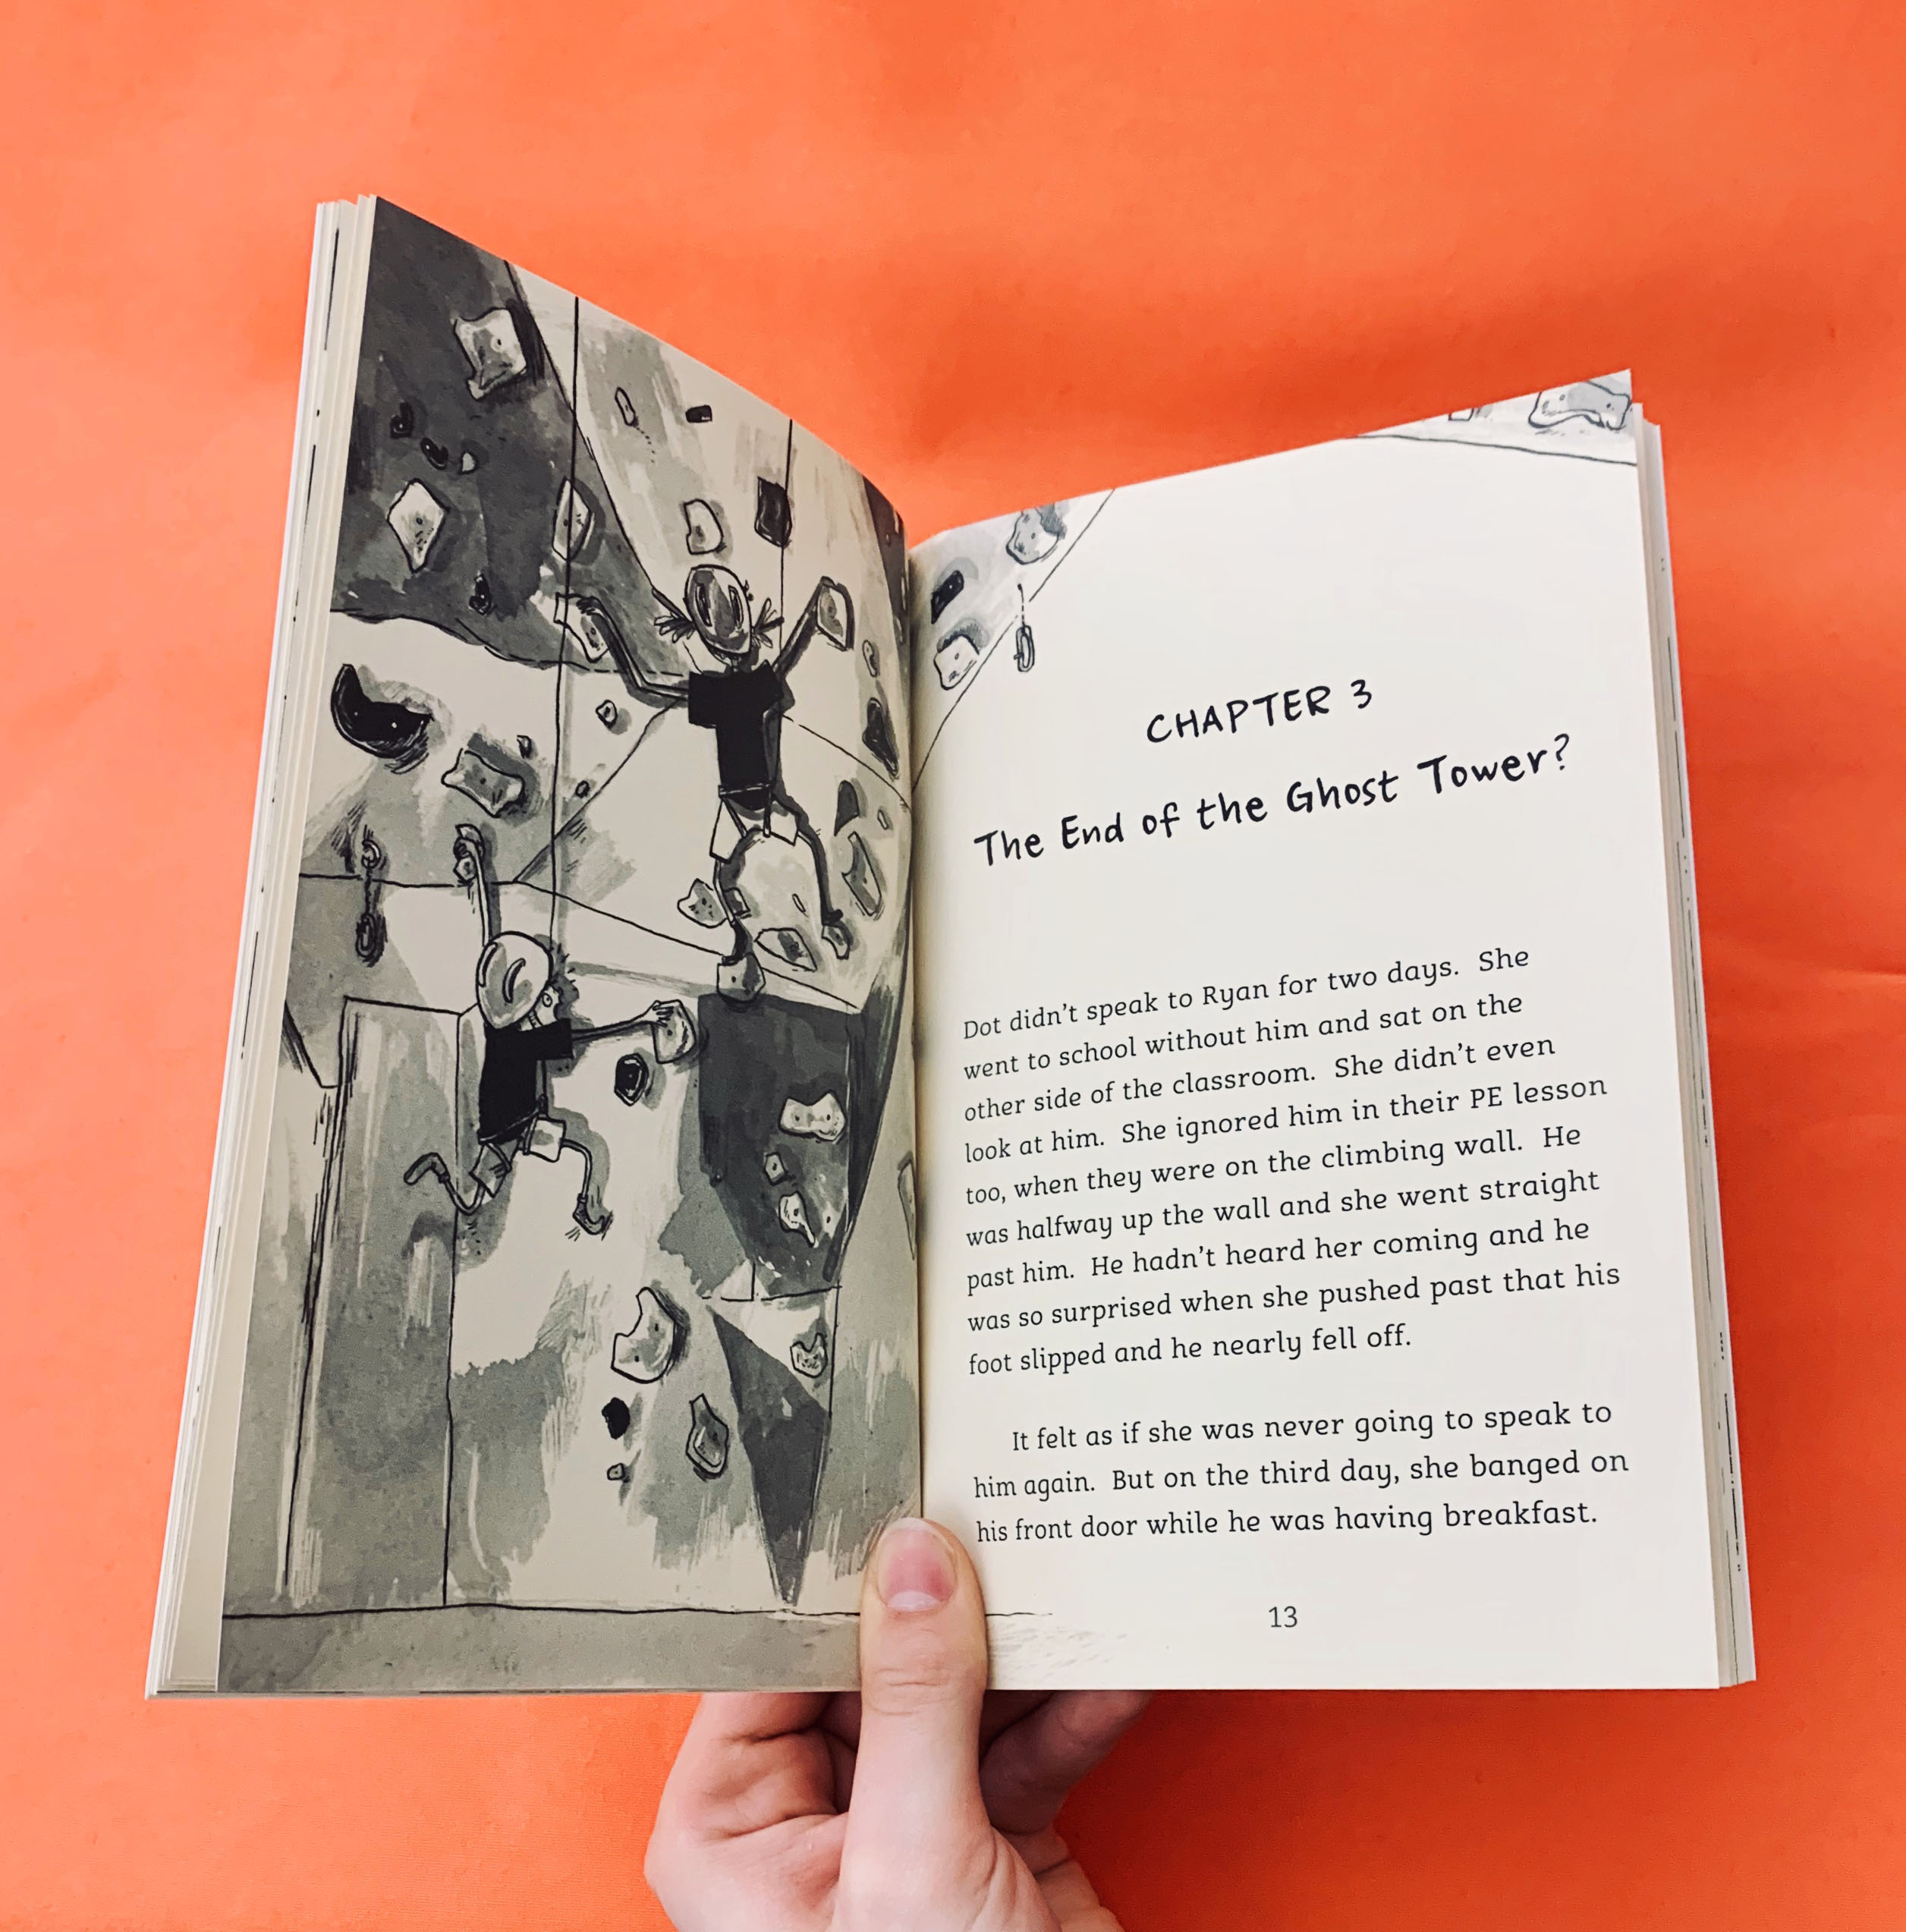 an image of The Ghost Tower opened at a page with an illustration of Dot and Ryan going wall climbing